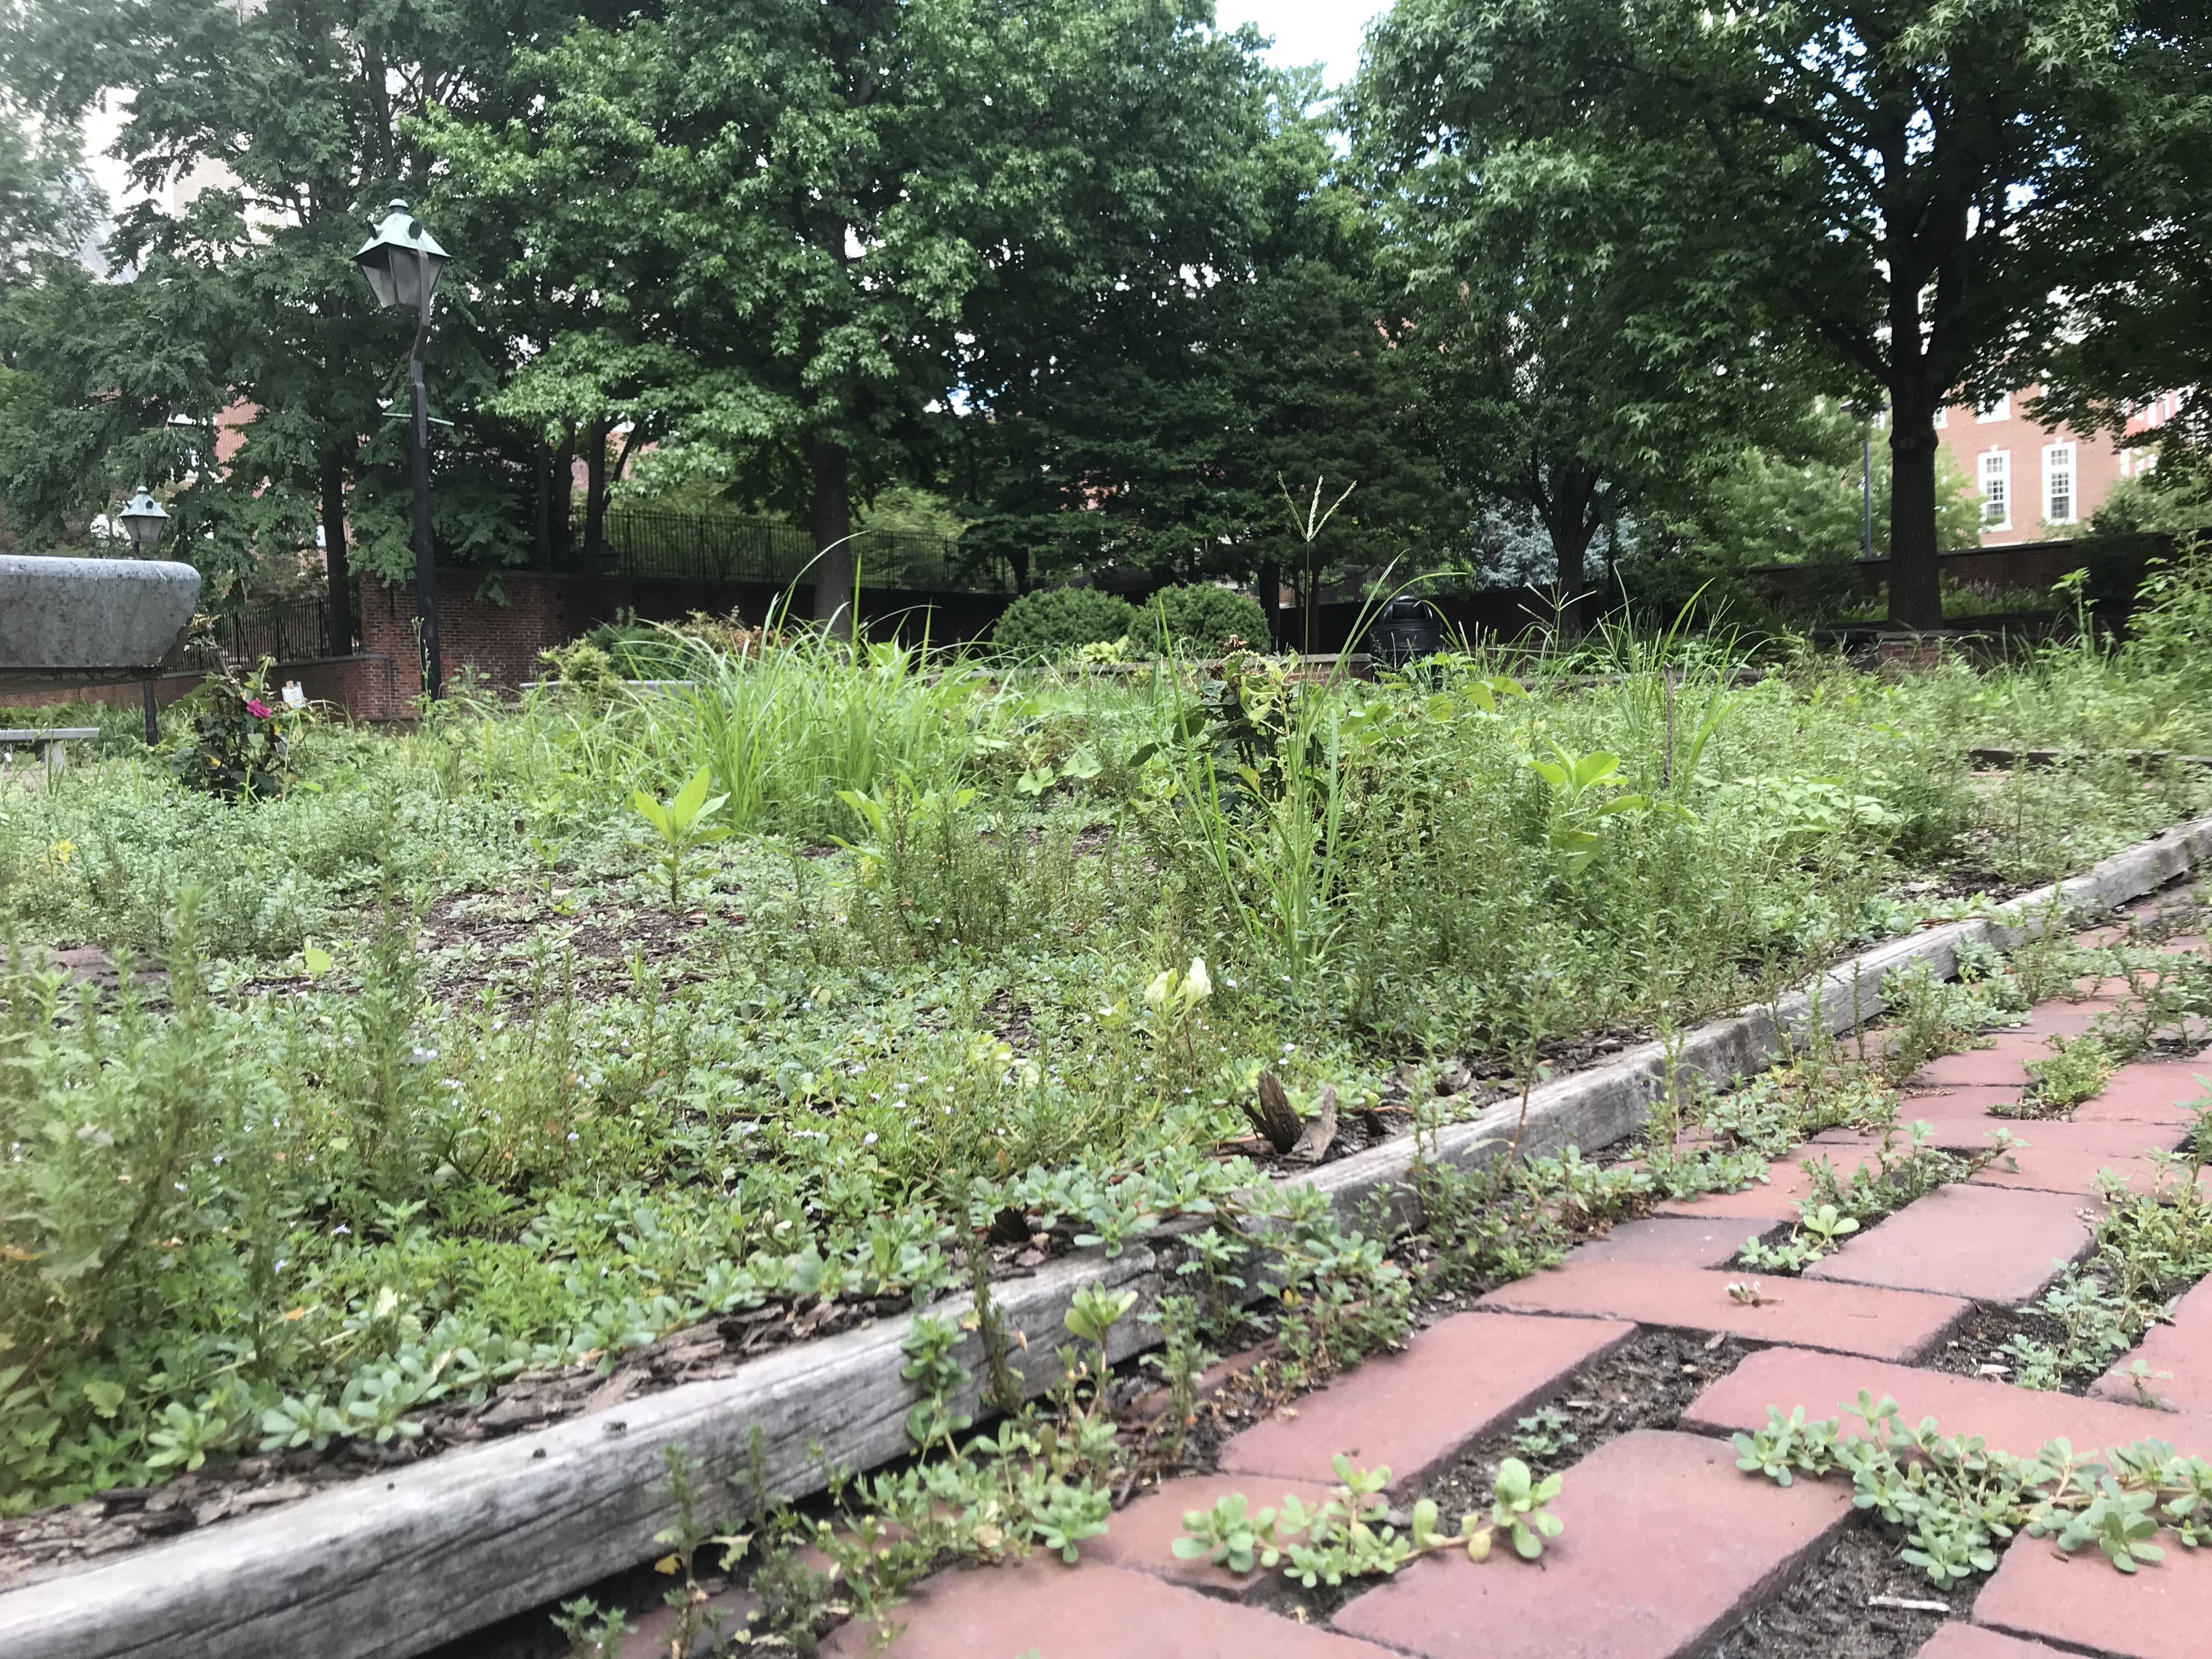 The Rose Garden overseen by the Independence National Historical Park in Philadelphia, bordered by Walnut and Locust Streets, between 4th and 5th, has been overgrown with weeds recently. It´s seen here July 5, 2018.